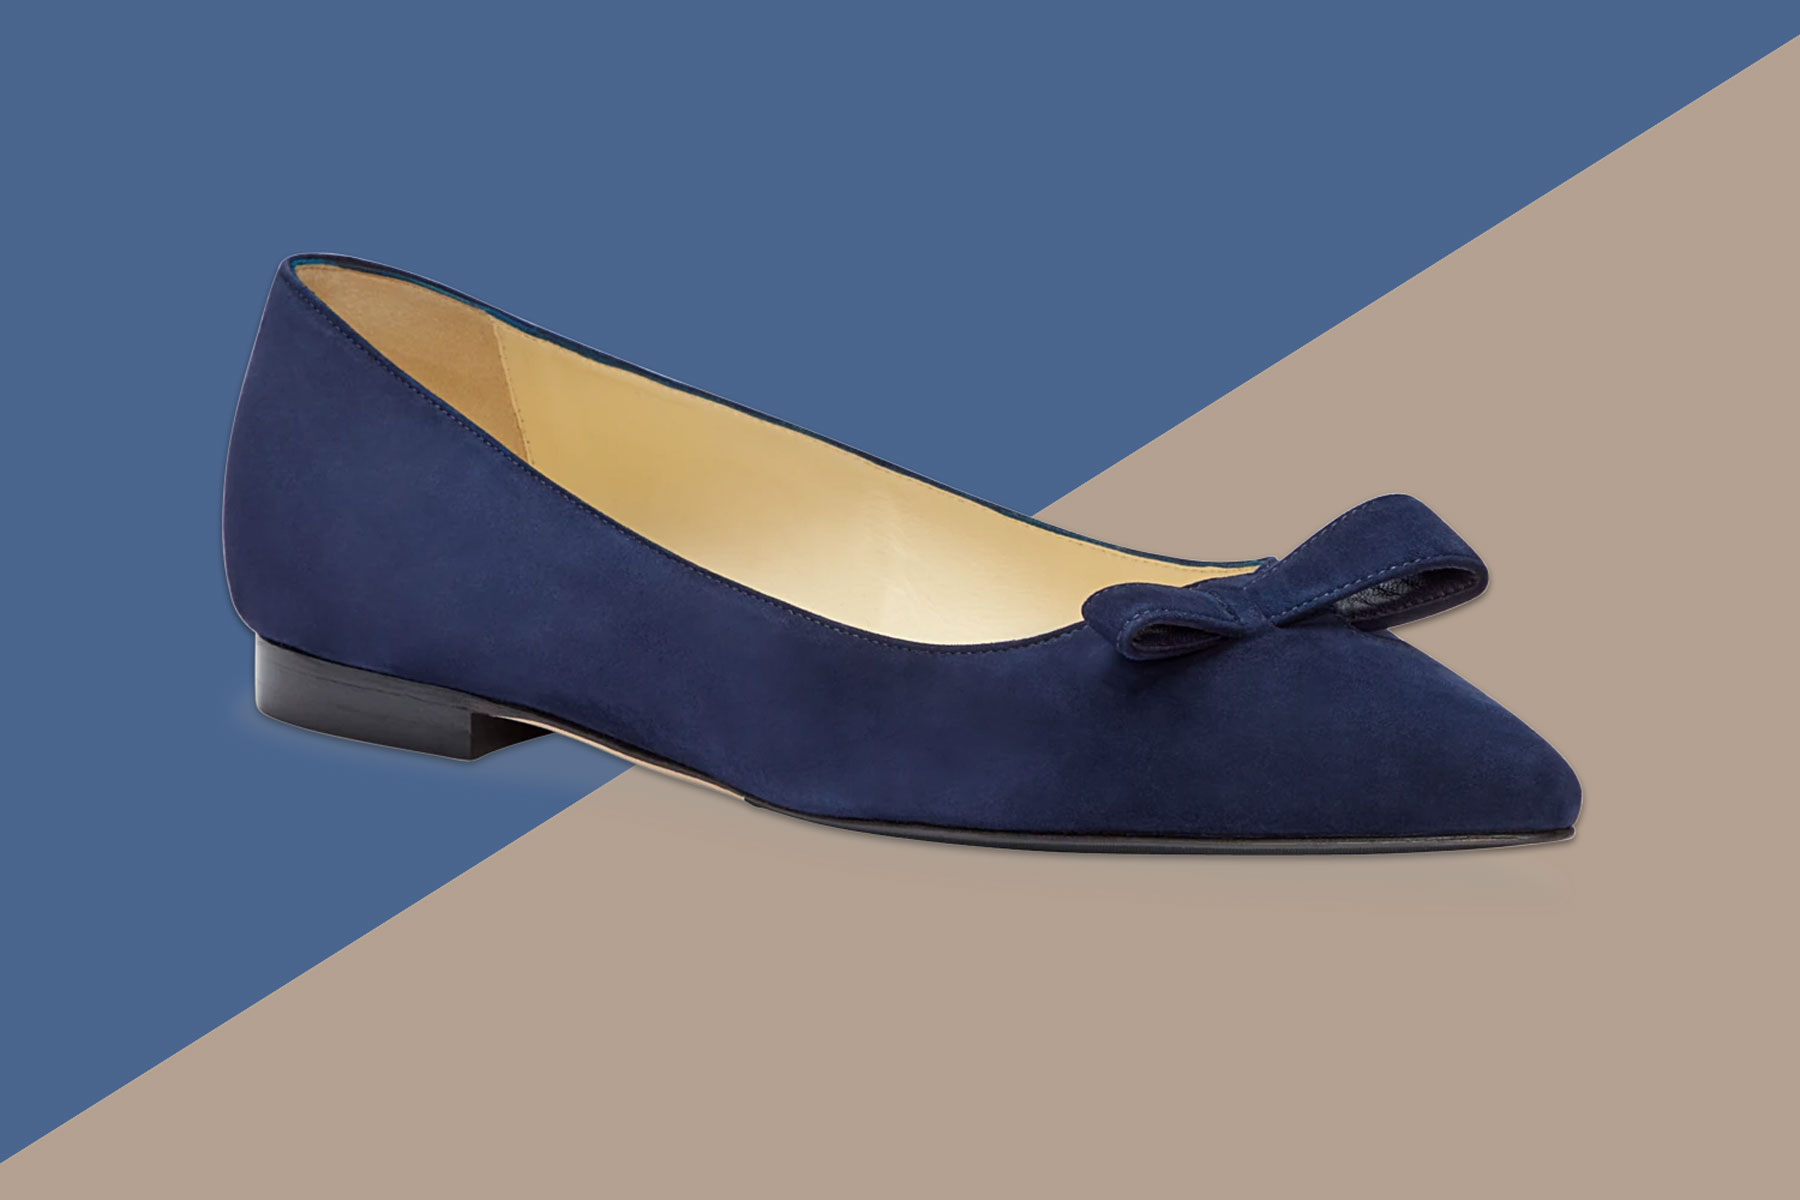 Navy suede ballet flats with pointed toe